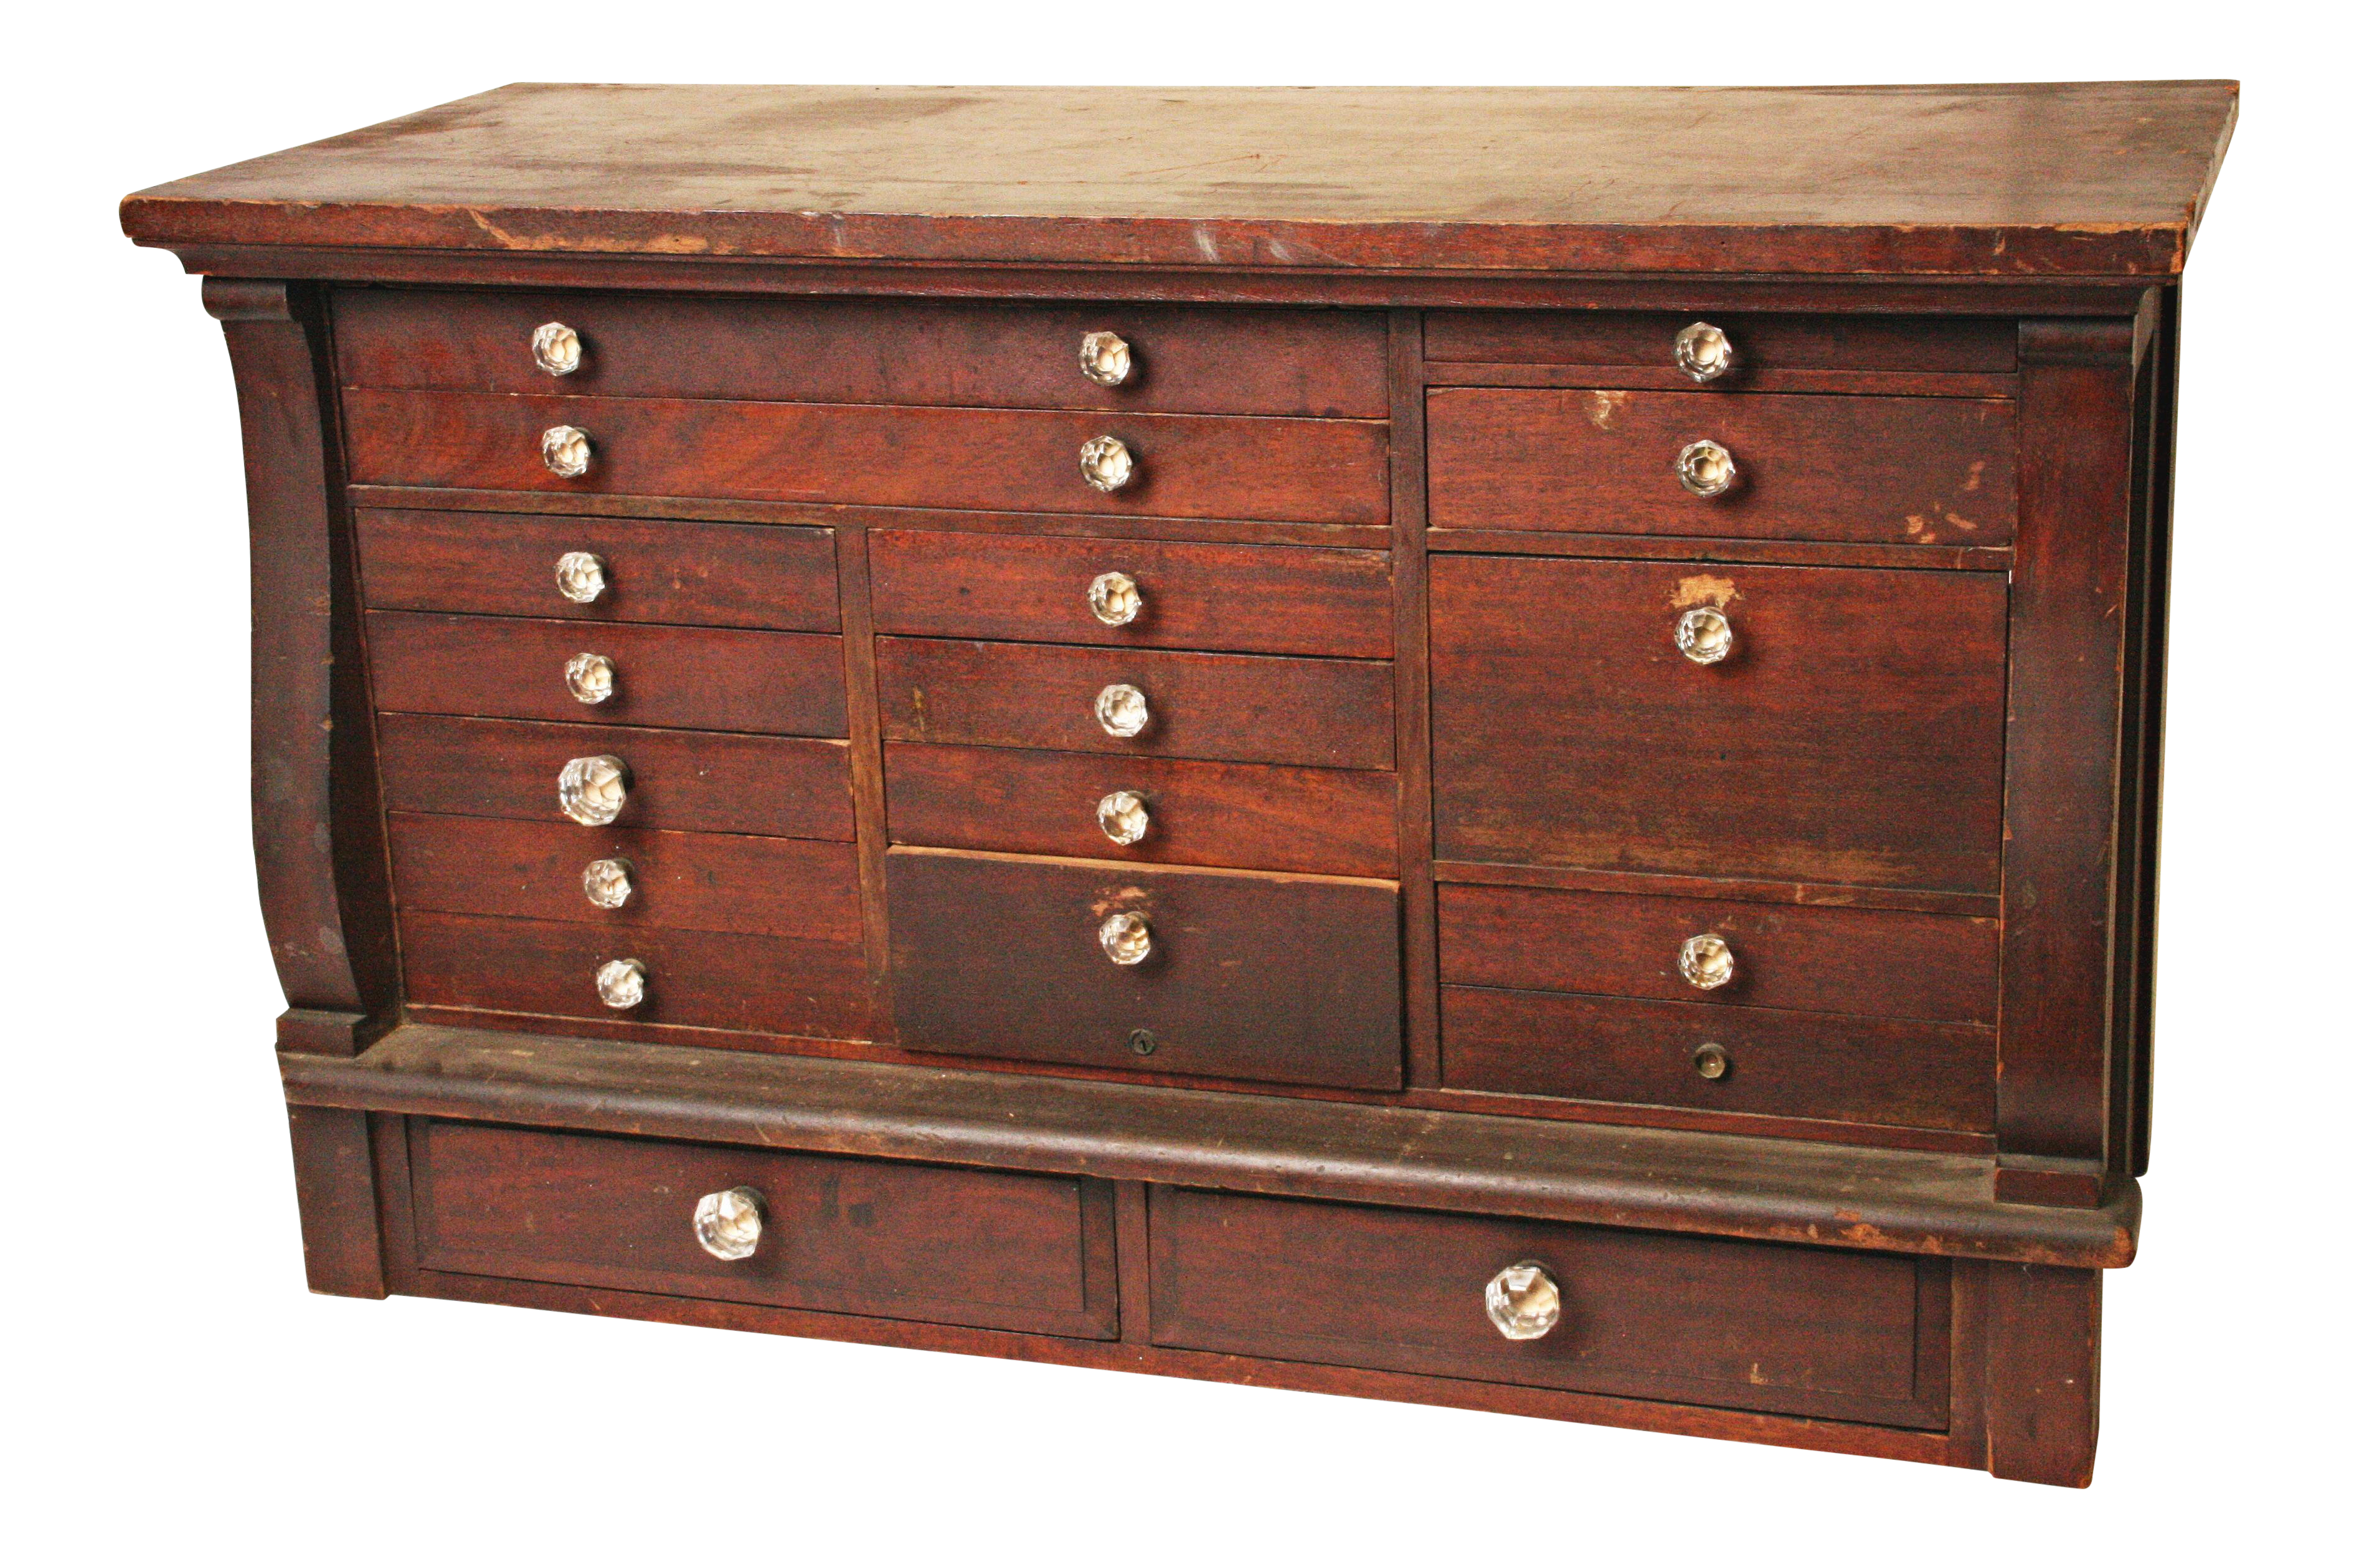 Antique Wood Apothecary Cabinet